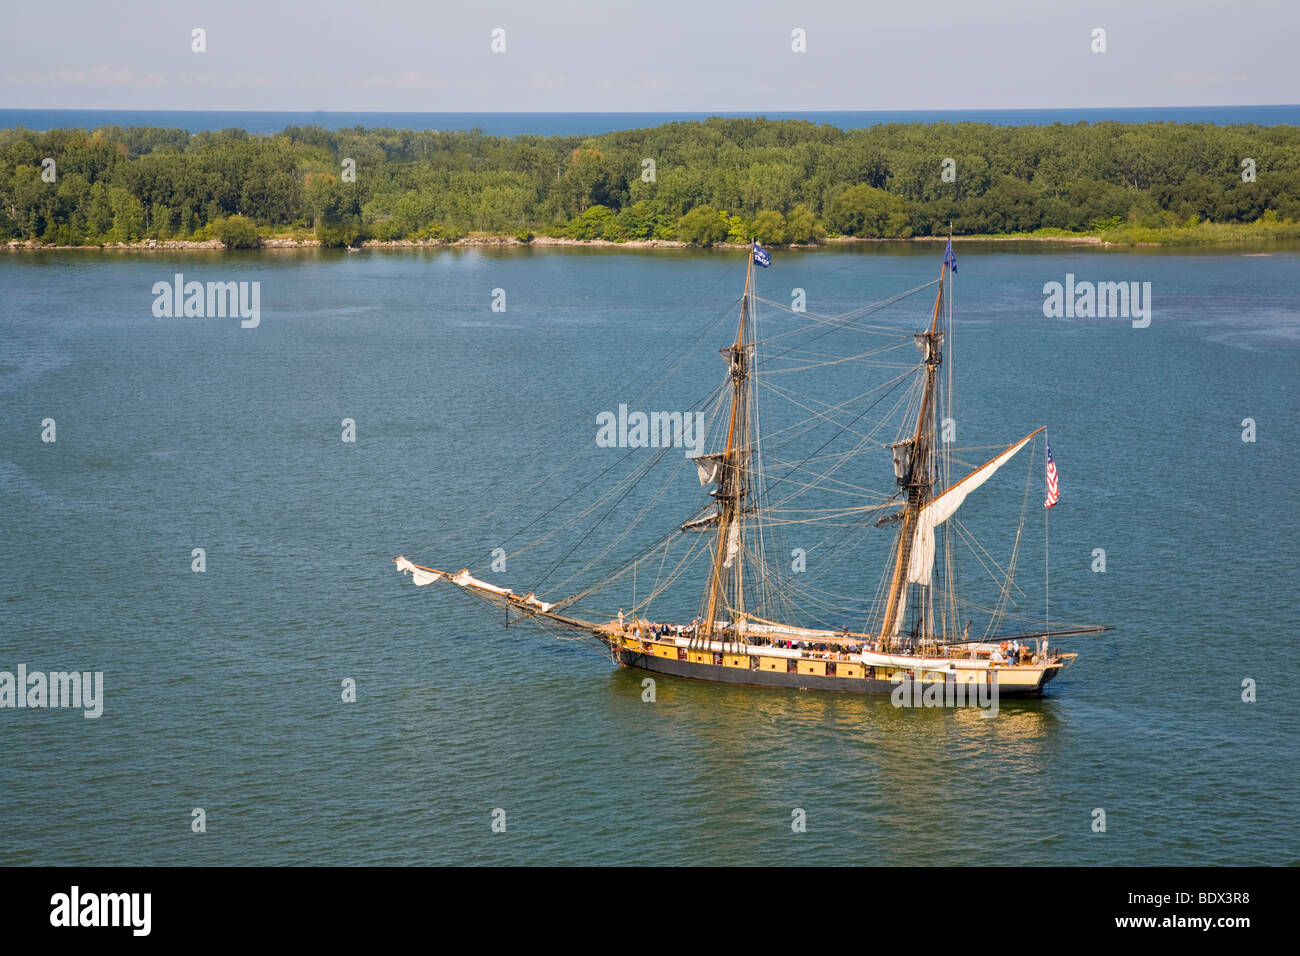 Flagship Niagara , US Brig Niagara in Erie Pennsylvania, United States - Stock Image